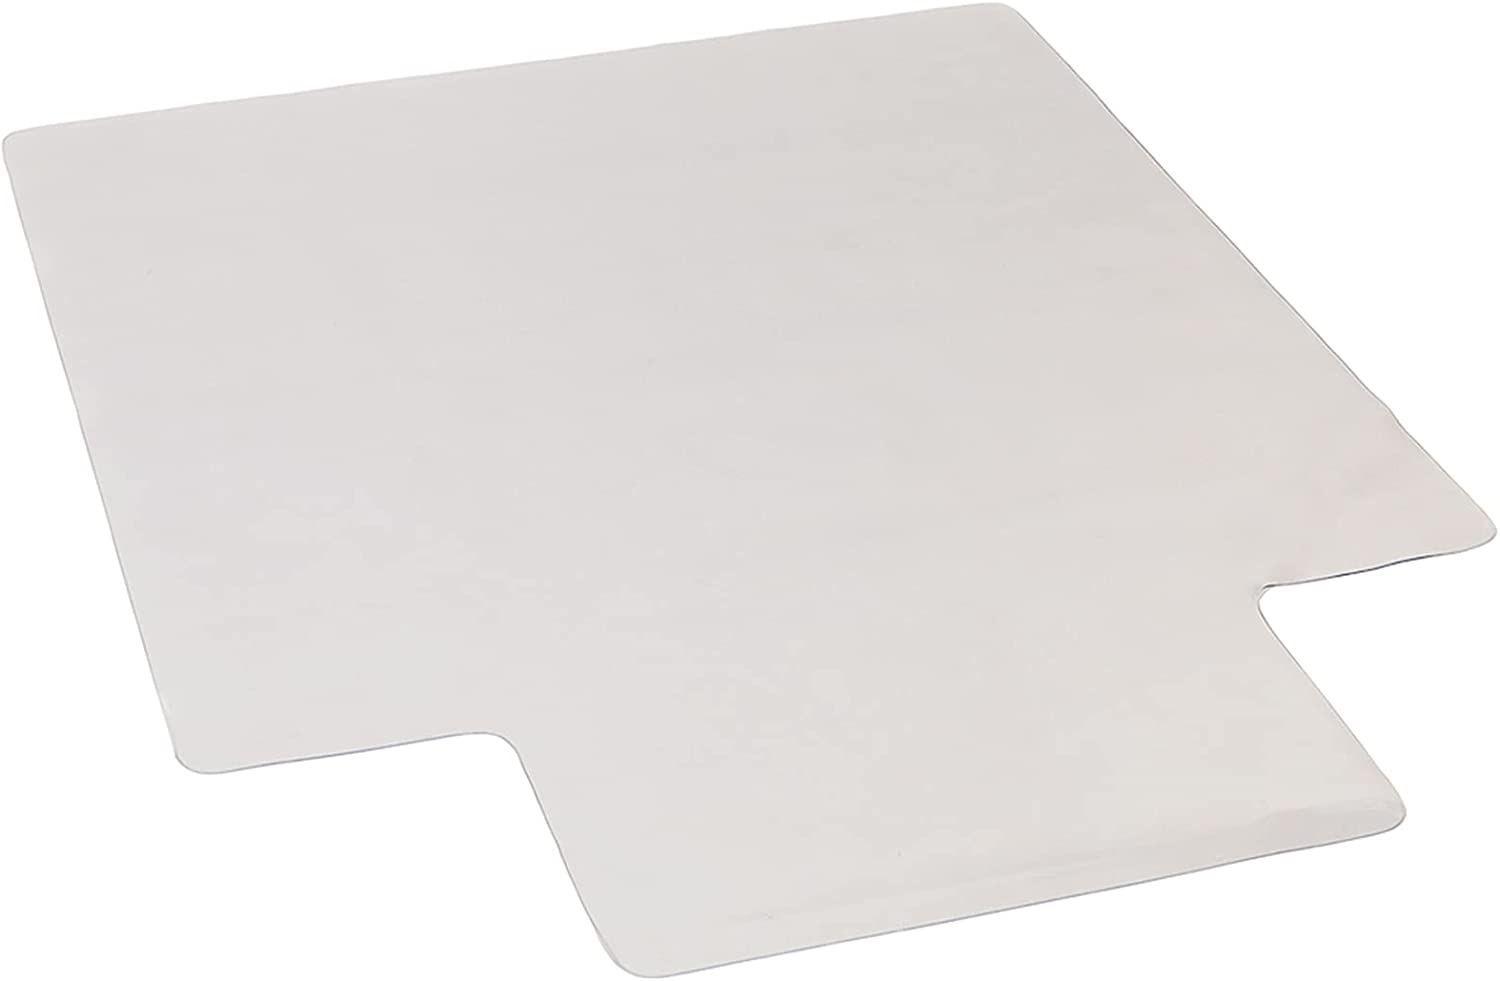 Clear Anti-Slip PVC Floor Mat,Floor Protection Desk Chair Mat with Lip,Carpet with Lip Studs Strong Impact Resistance Easy to Clean, Home Furniture Table Corner Protection Pad Hard Floors